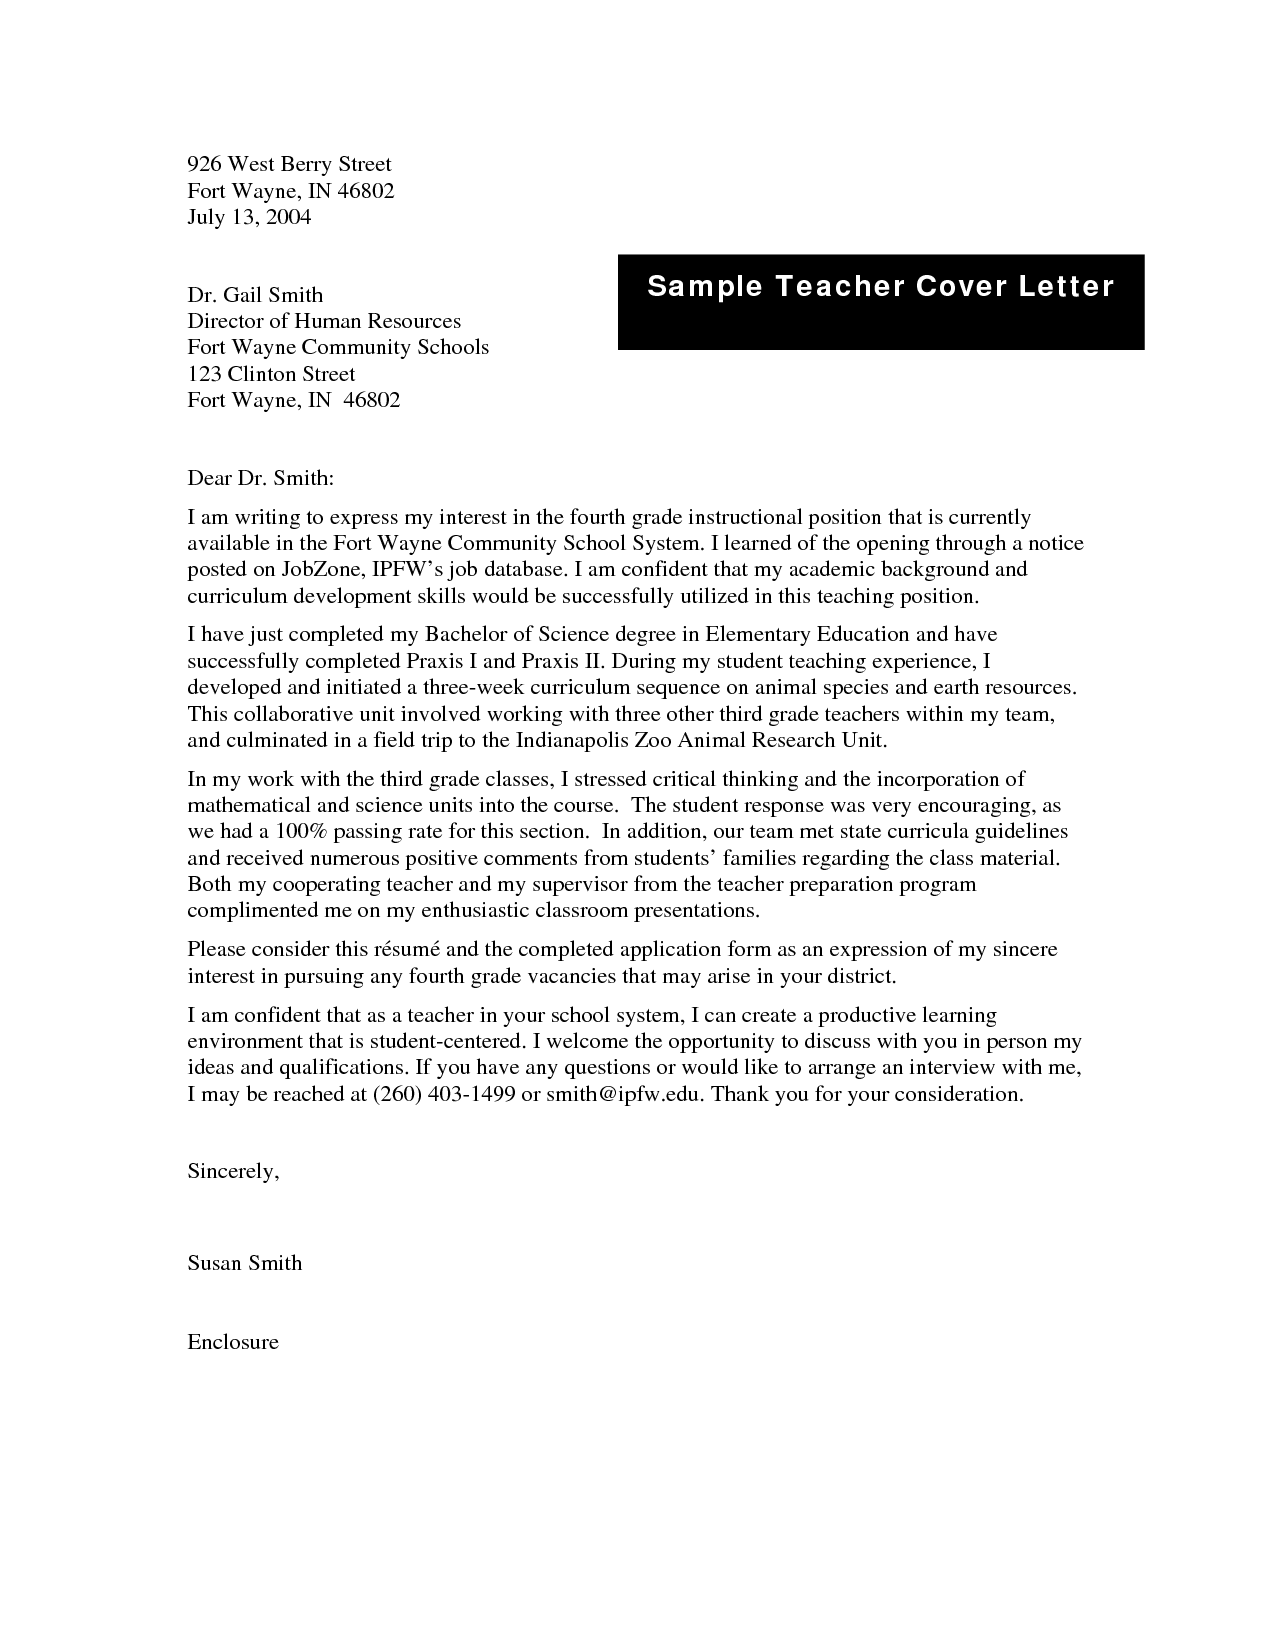 sample cover letters for teaching positions sample cover letter teaching position teaching job cover letter sample high school teacher cover letter - Cover Letter For High School